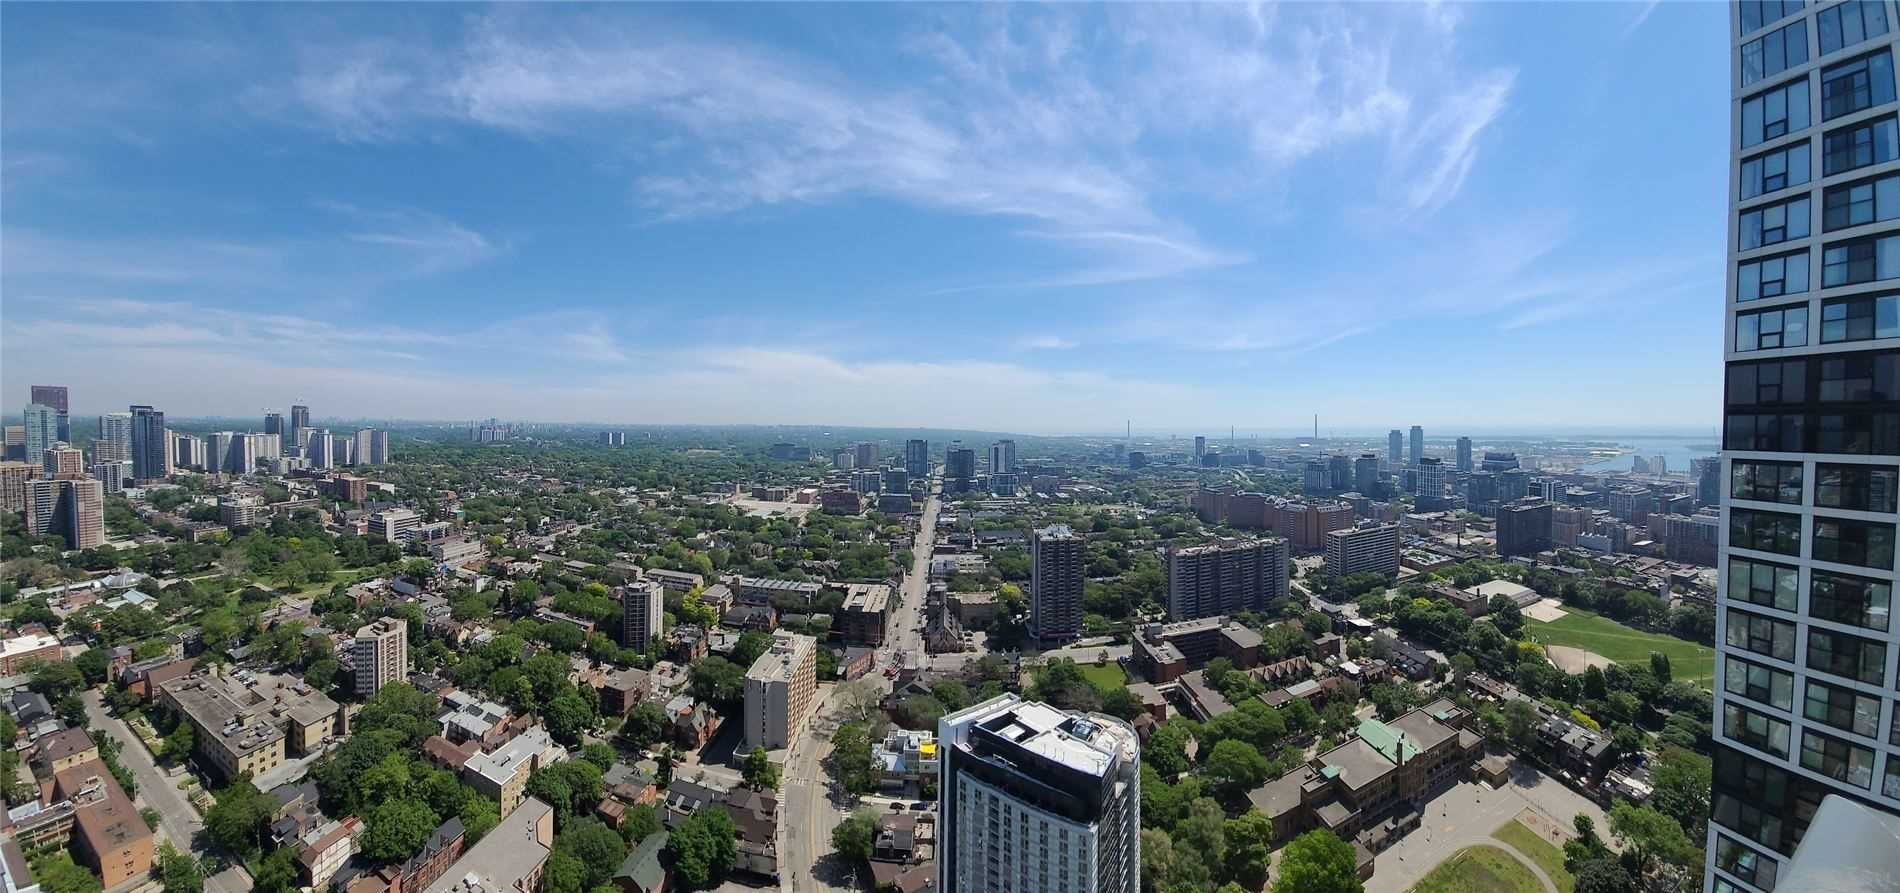 251 Jarvis St, unit 4601 for rent in Toronto - image #2